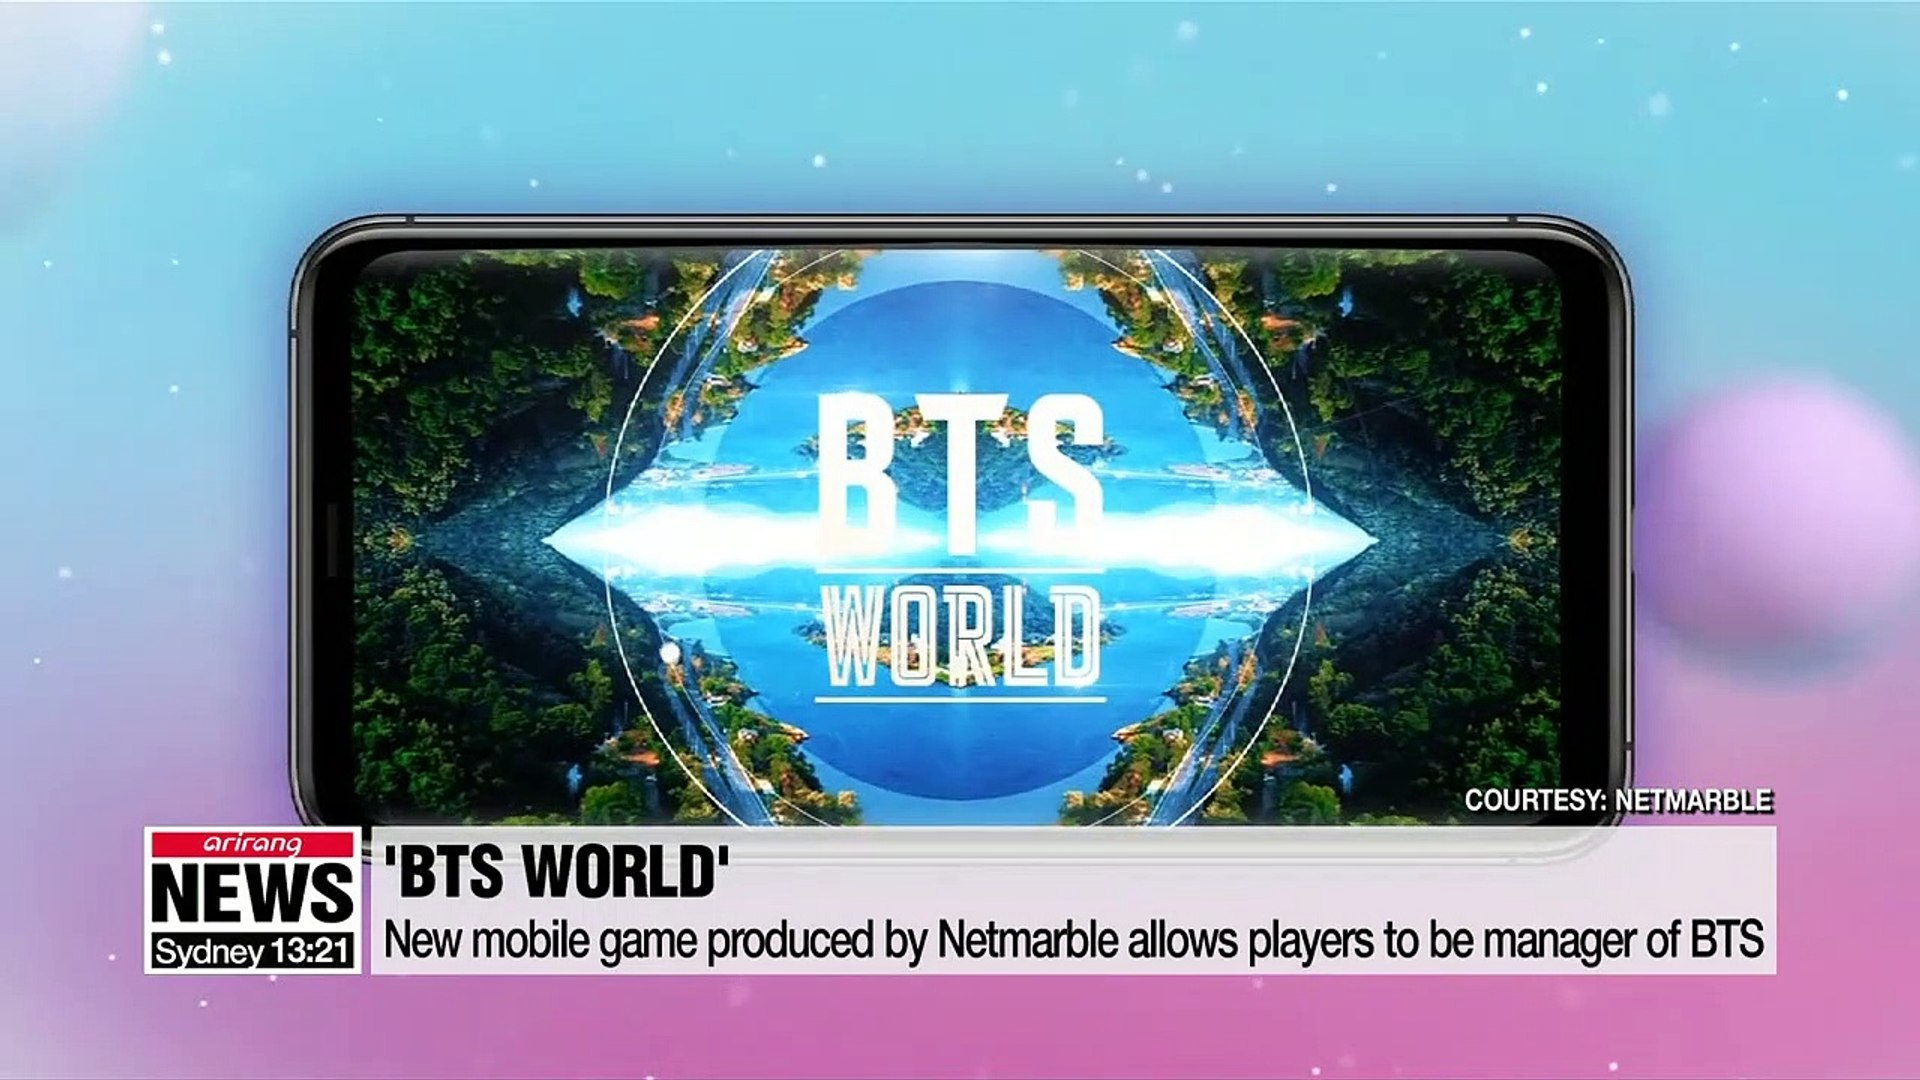 Boyband BTS to launch new mobile game where players manage band